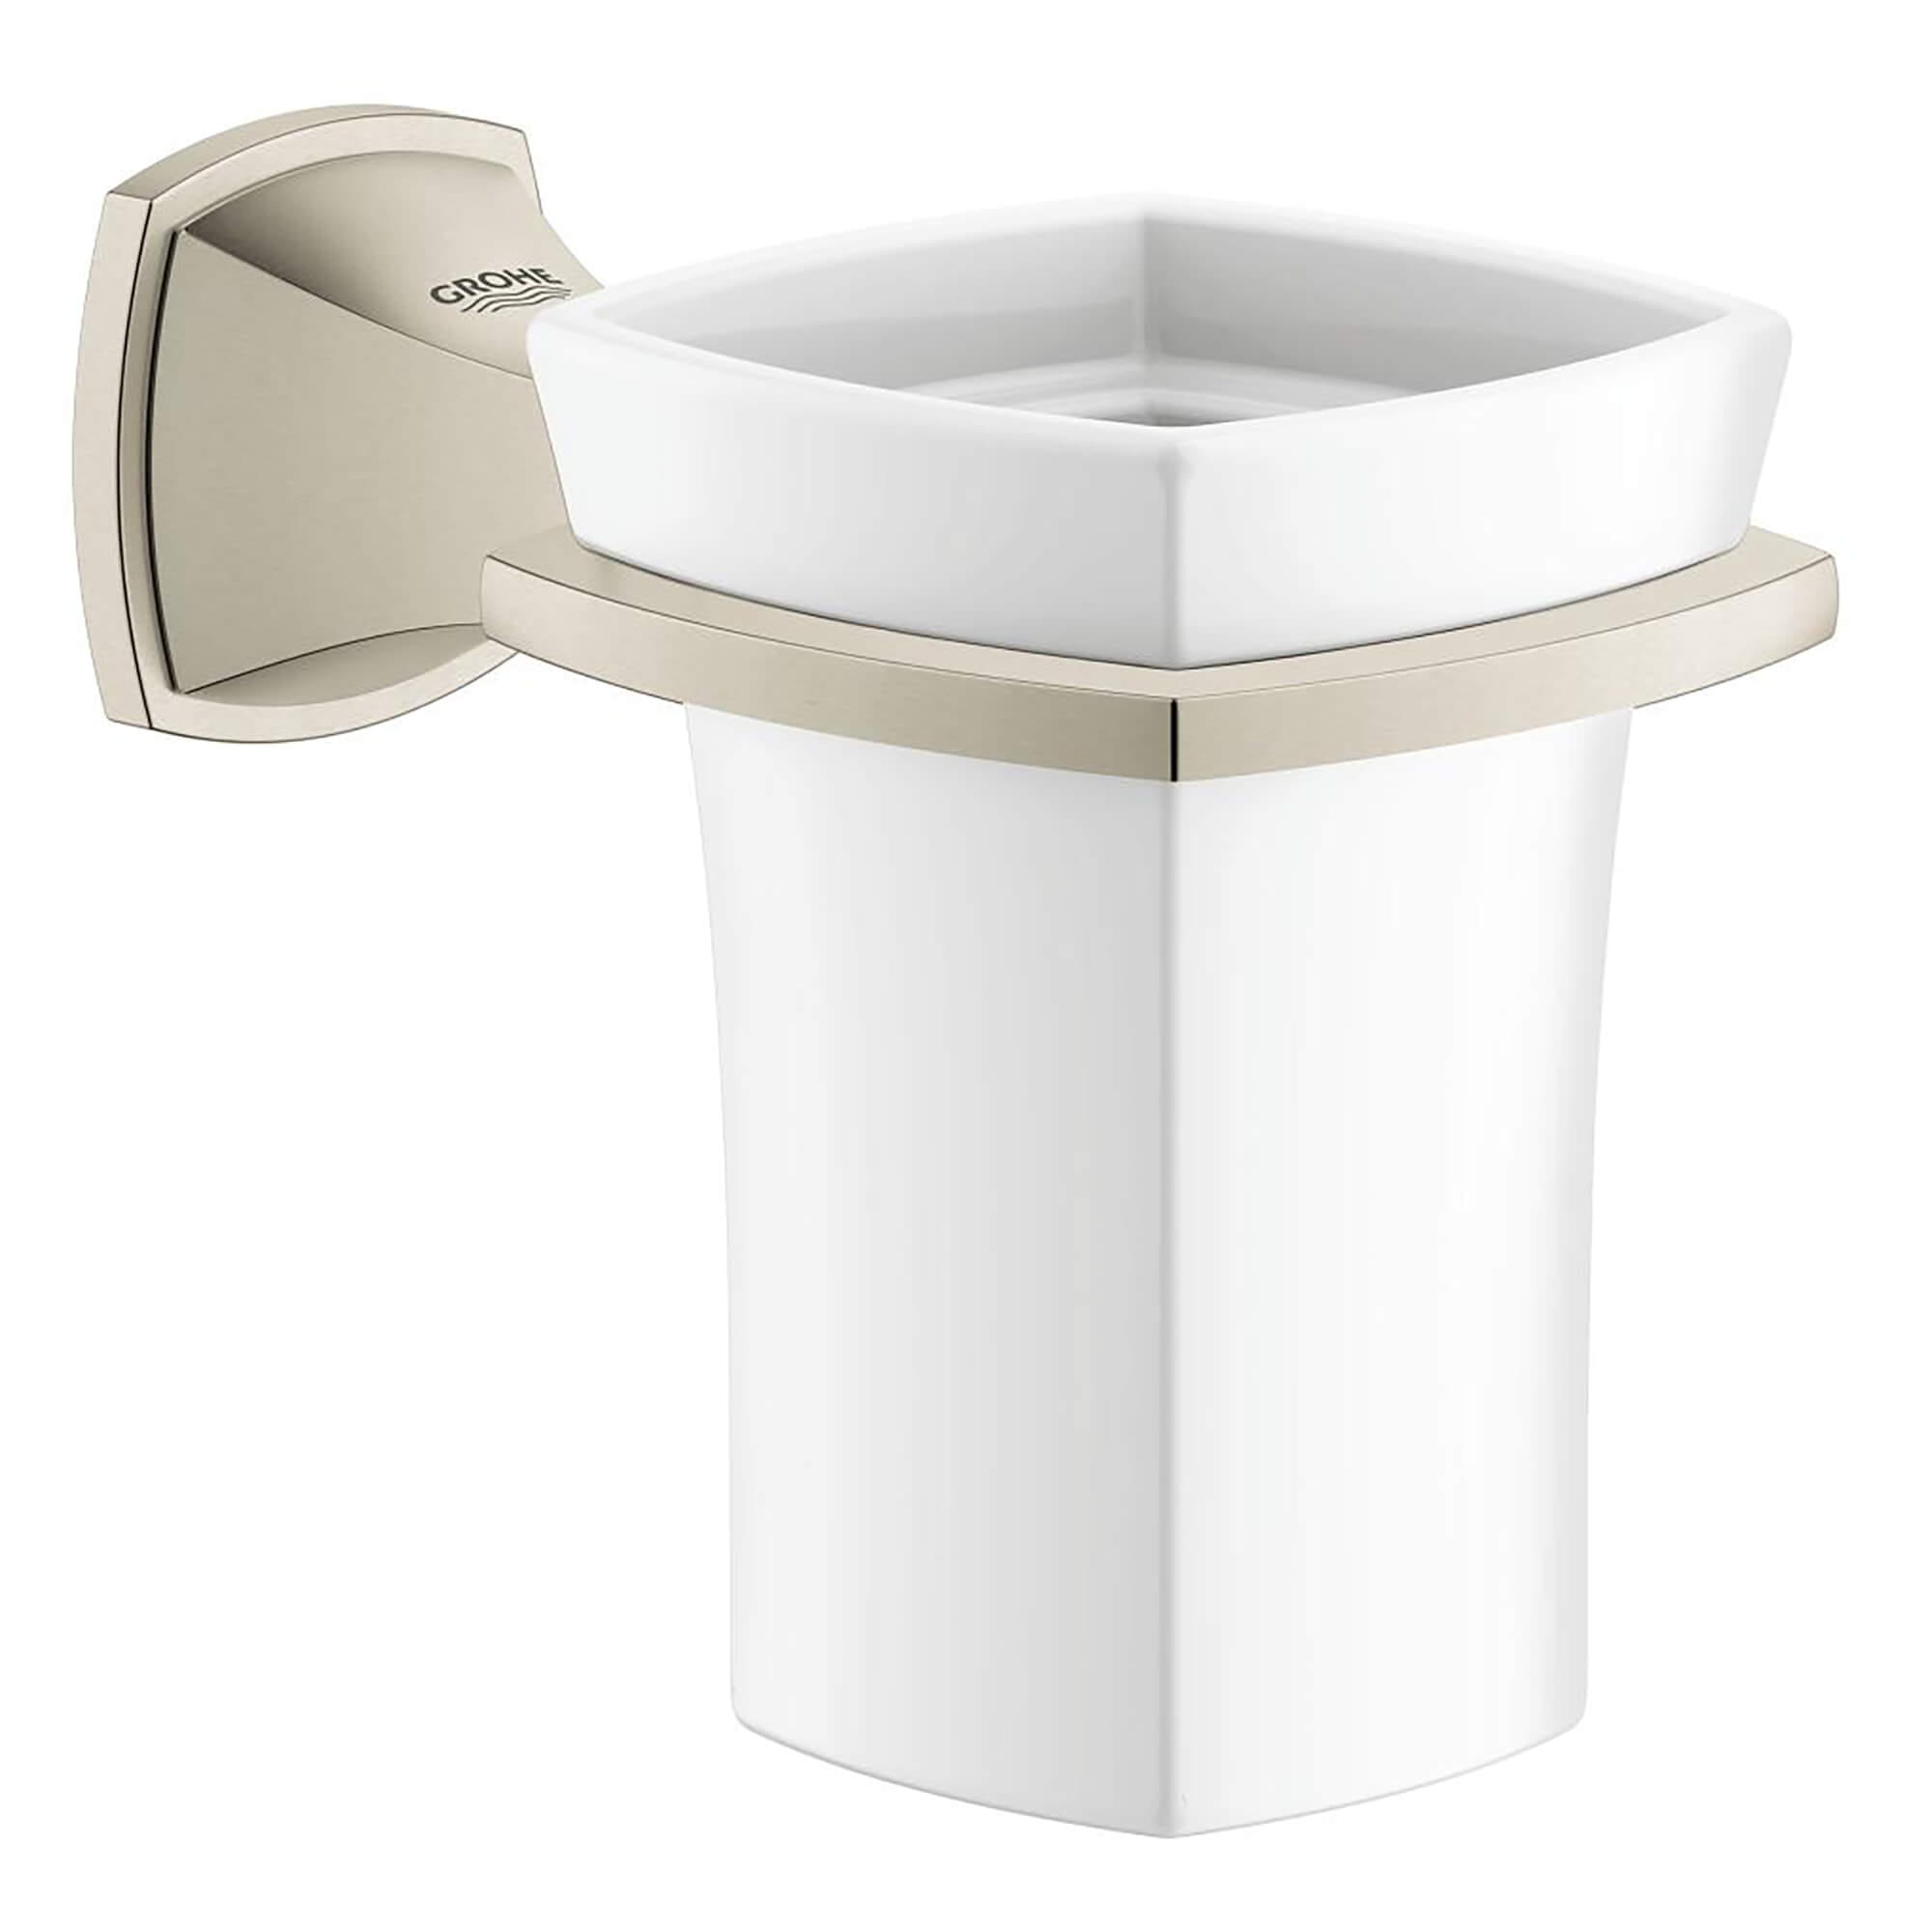 Ceramic Tumbler with Holder GROHE BRUSHED NICKEL